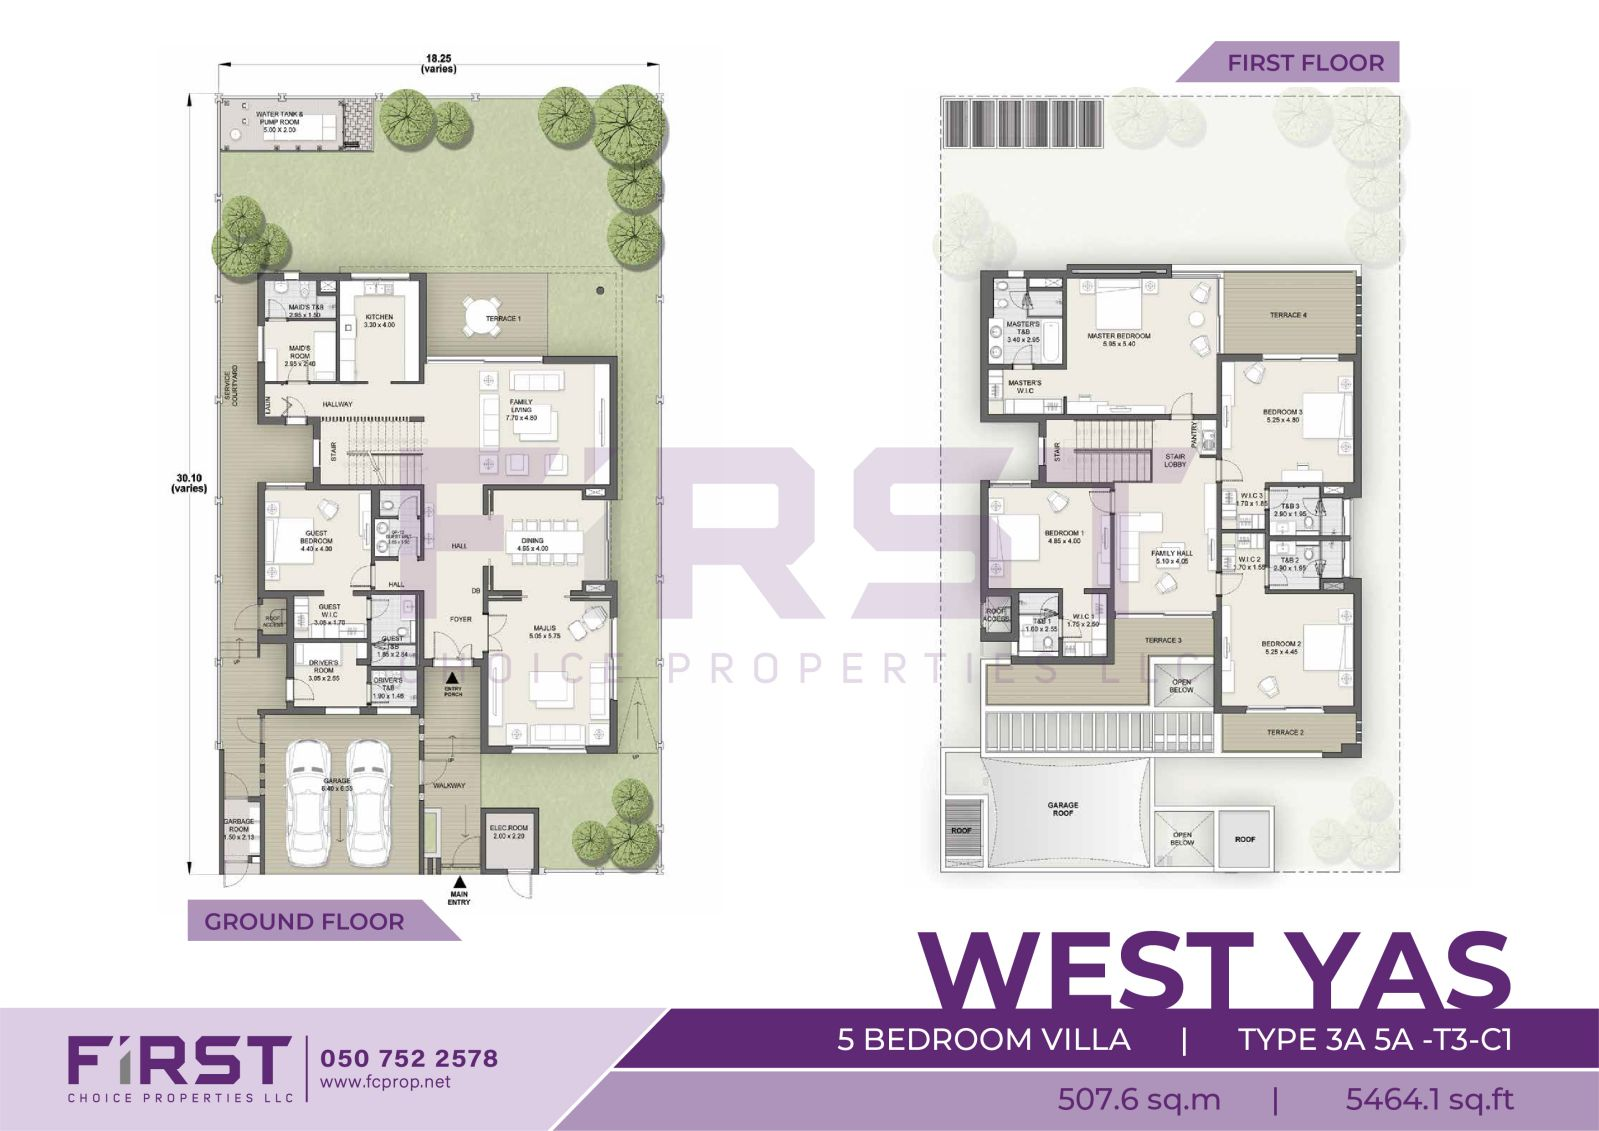 Floor Plan of 5 Bedroom VIlla TYPE 3A 5A-T3-C1 in West Yas Yas Island Abu Dhabi UAE 507.6 sq.m 5464.1 sq.ft.jpg